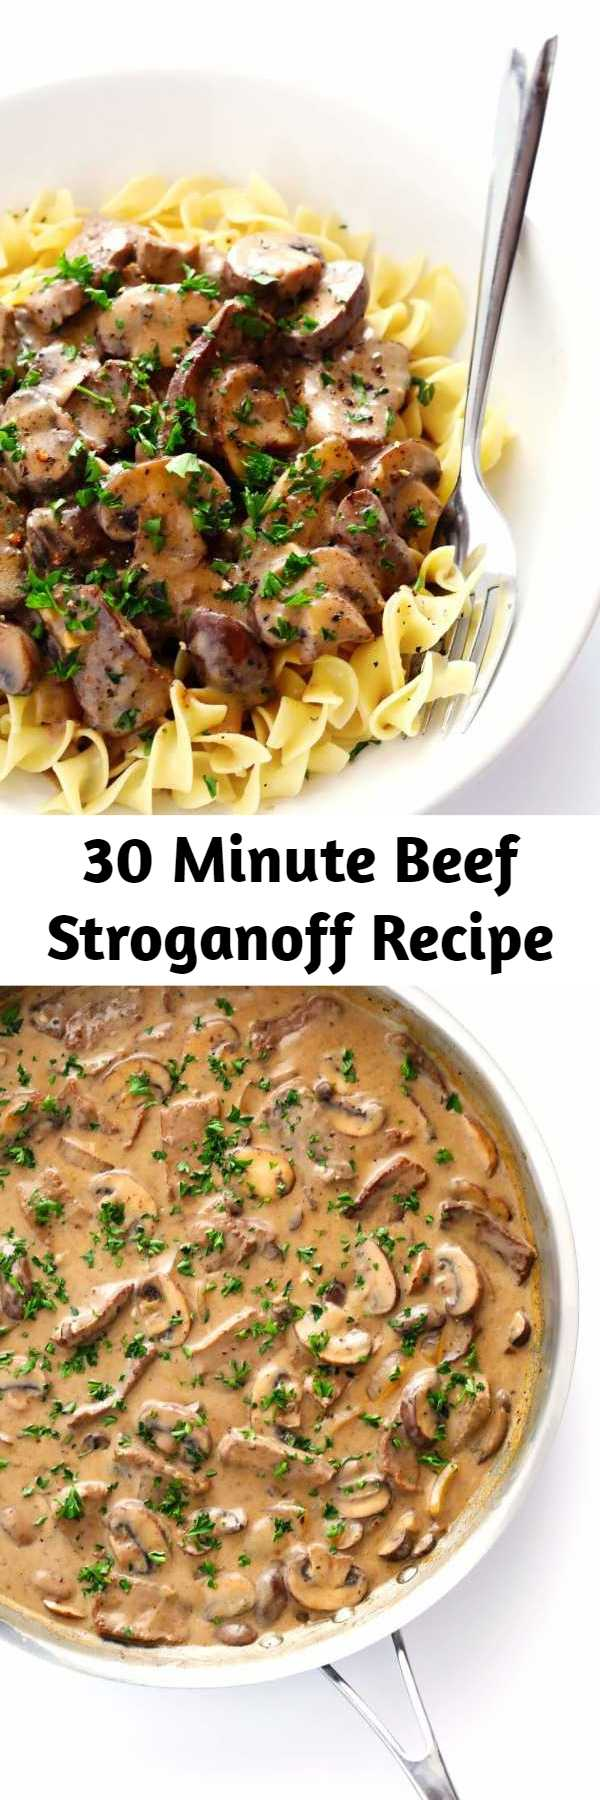 30 Minute Beef Stroganoff Recipe - Classic beef stroganoff is cooked with an amazing creamy mushroom sauce and served over egg noodles. And it all comes together in under 30 minutes!